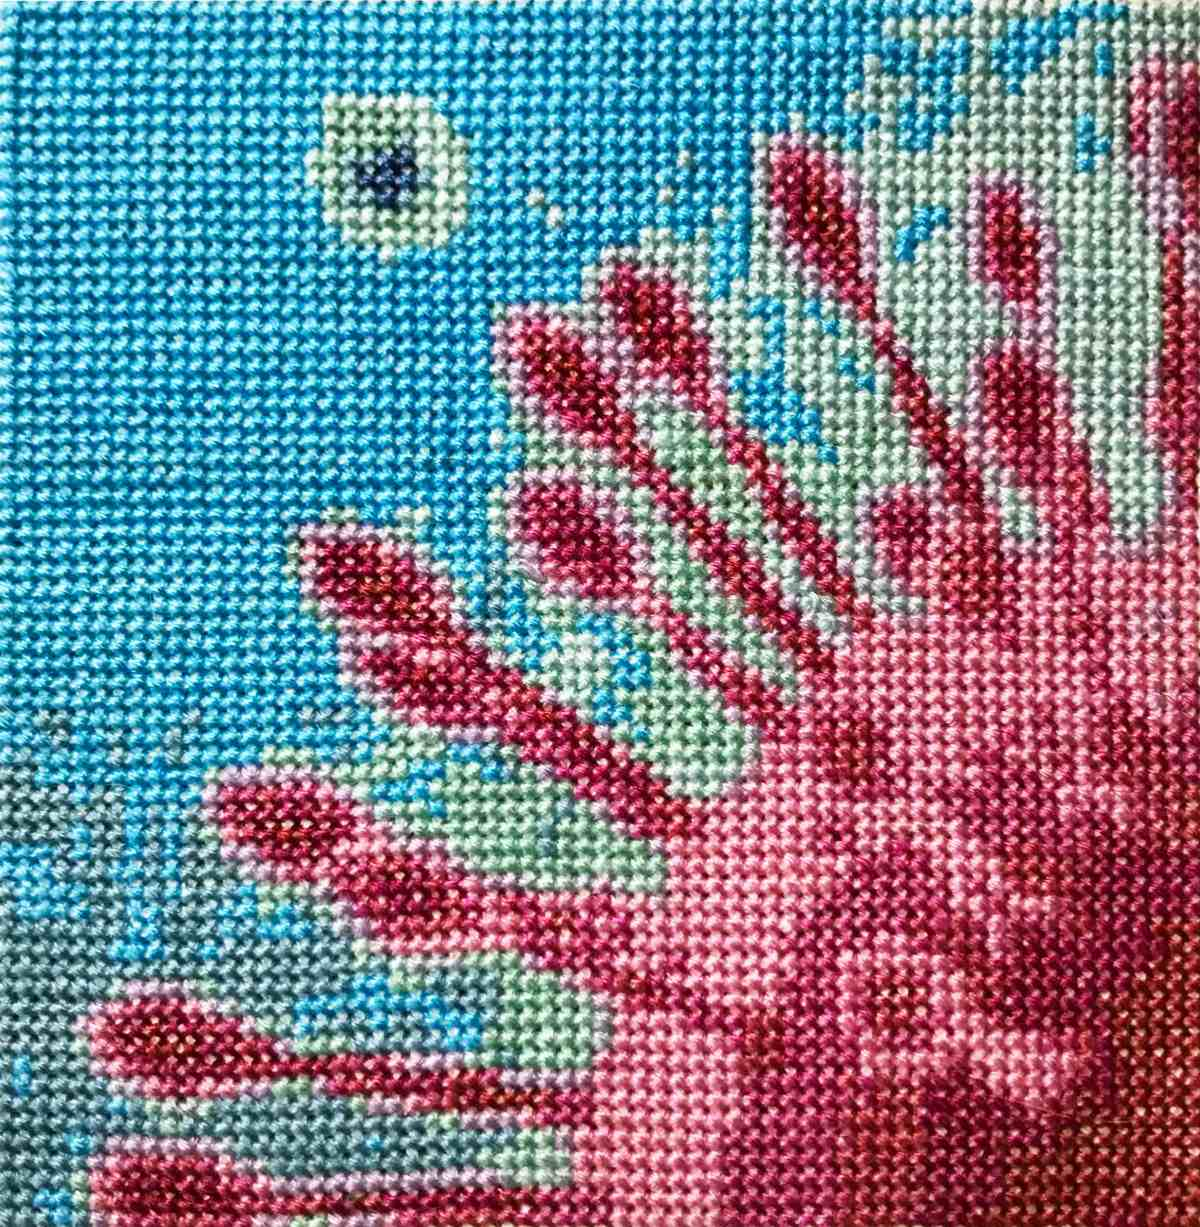 A cross stitched pattern of the novel coronavirus, COVID-19,a round shape with spikes coming out of it.